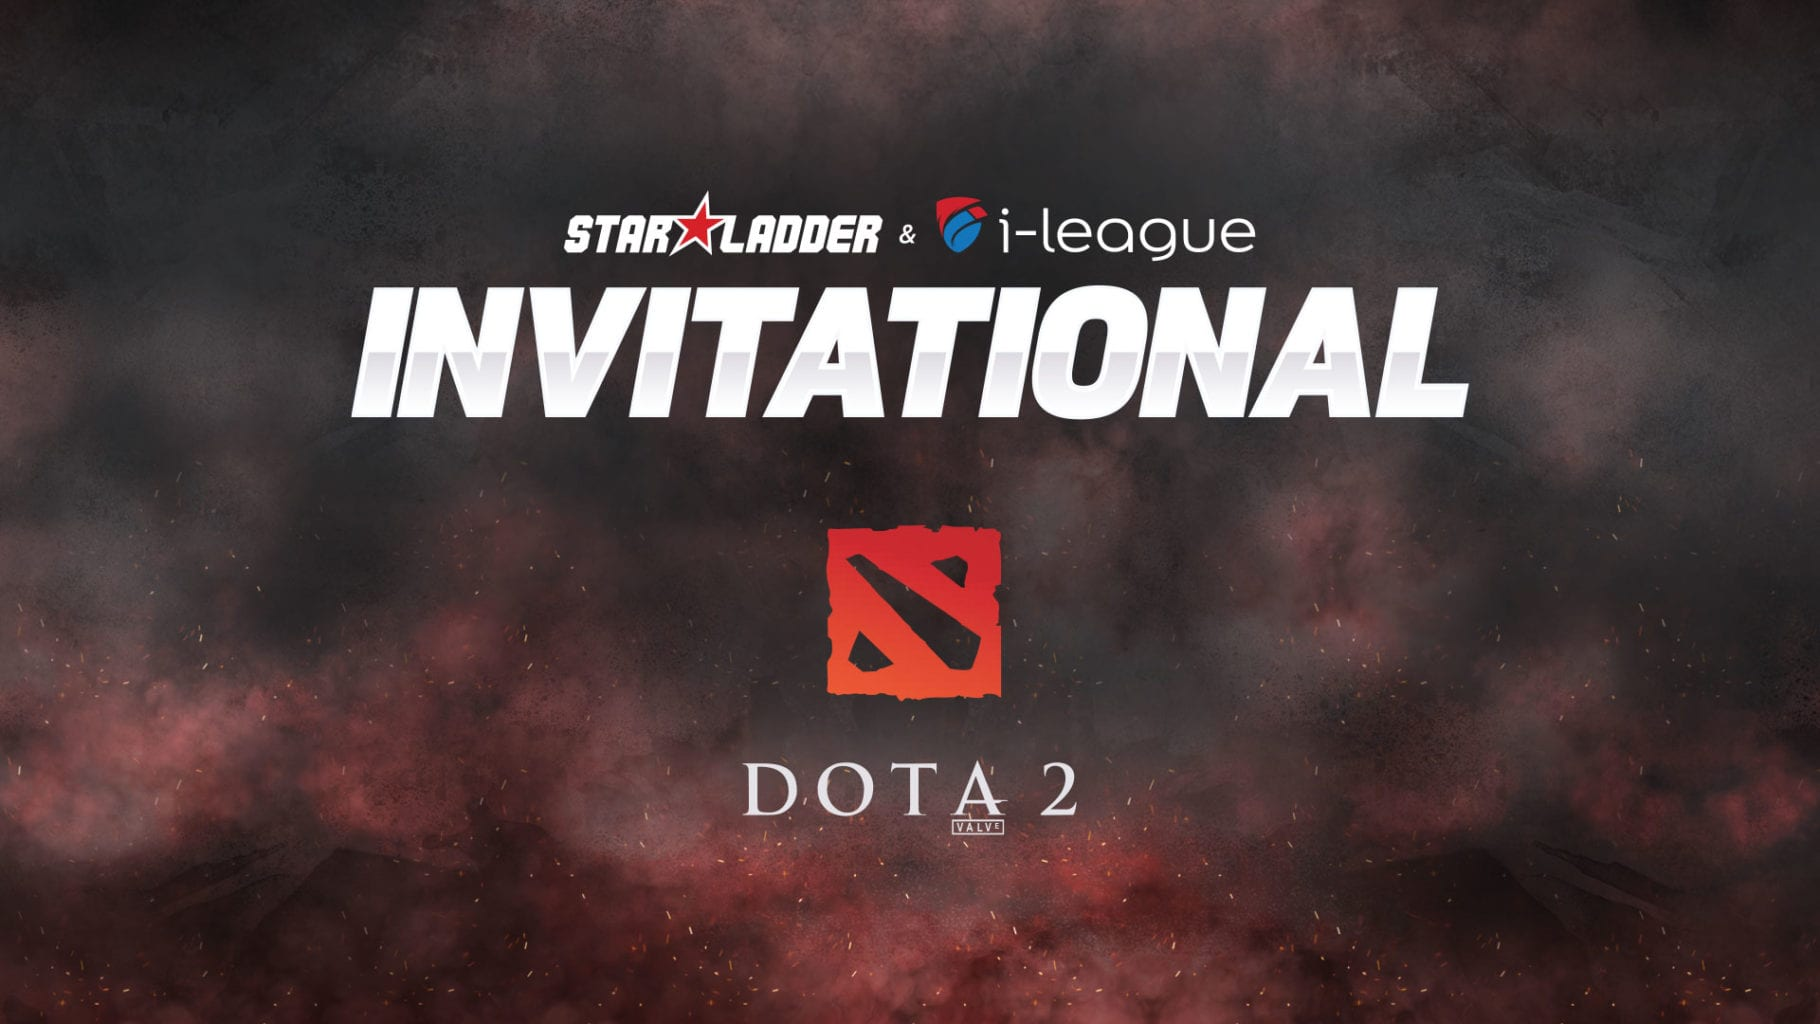 i-League, Star Ladder, Dota 2, The Aftermath